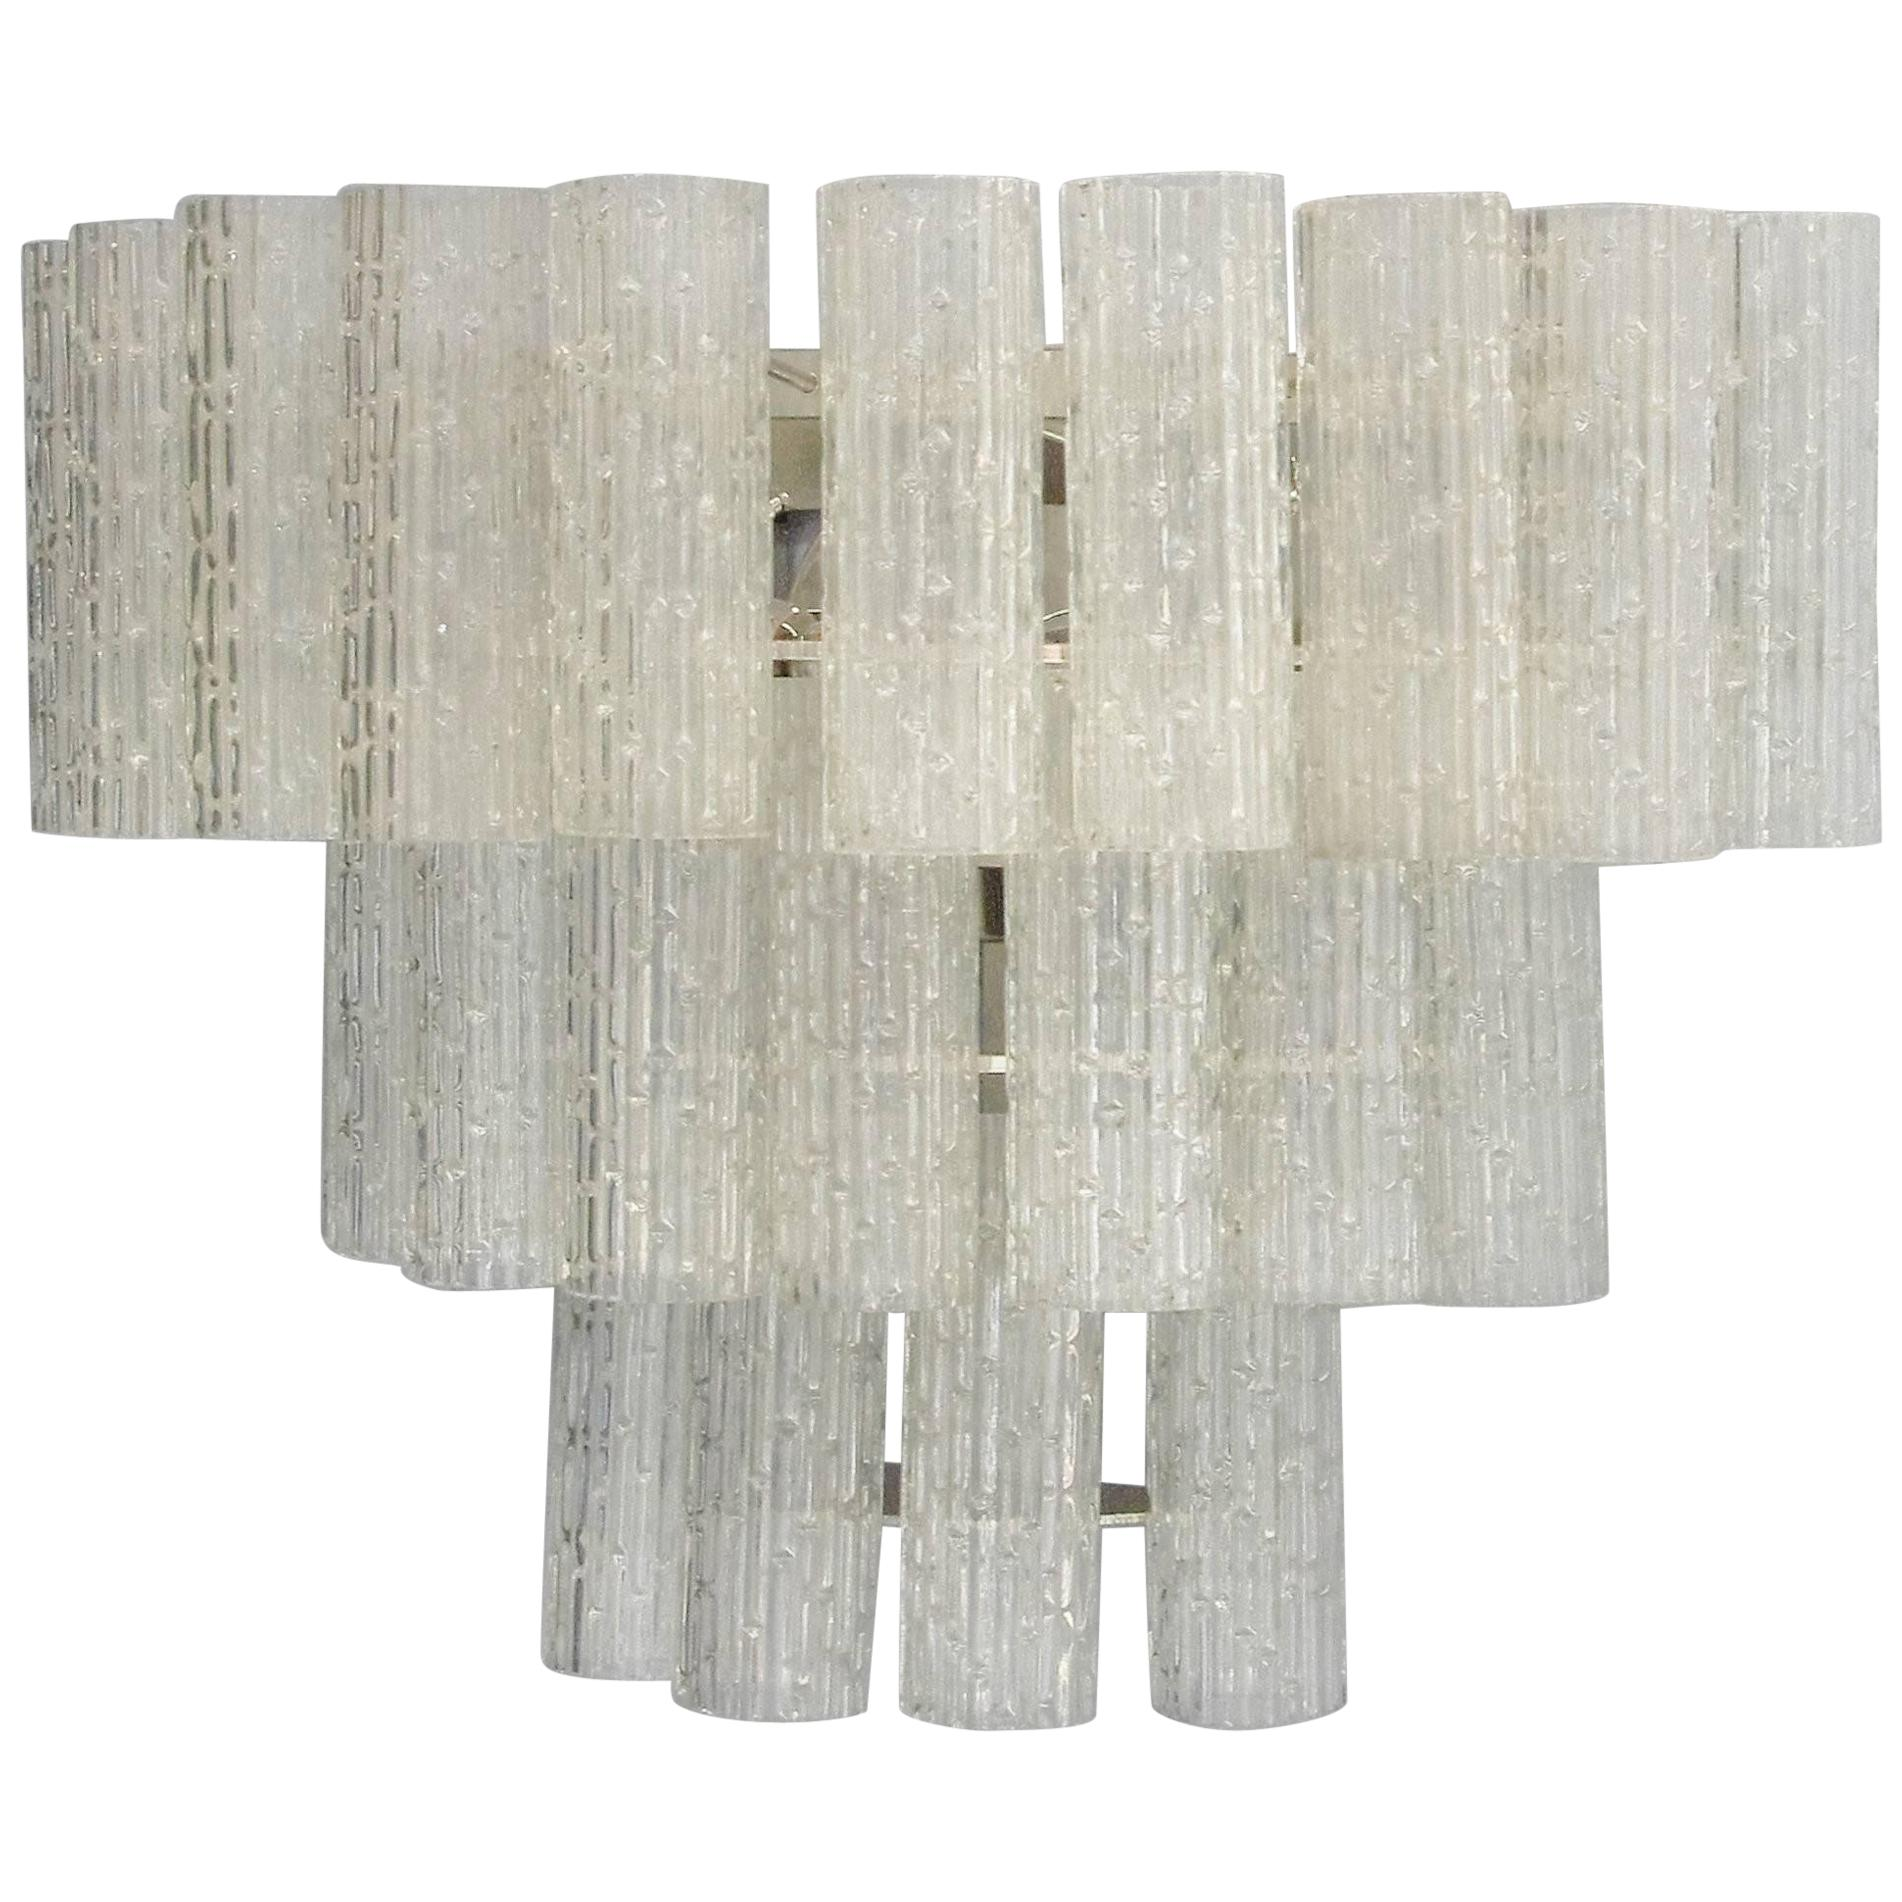 Eight Vintage Italian Sconces with Clear Murano Glass Designed by Mazzega, 1960s